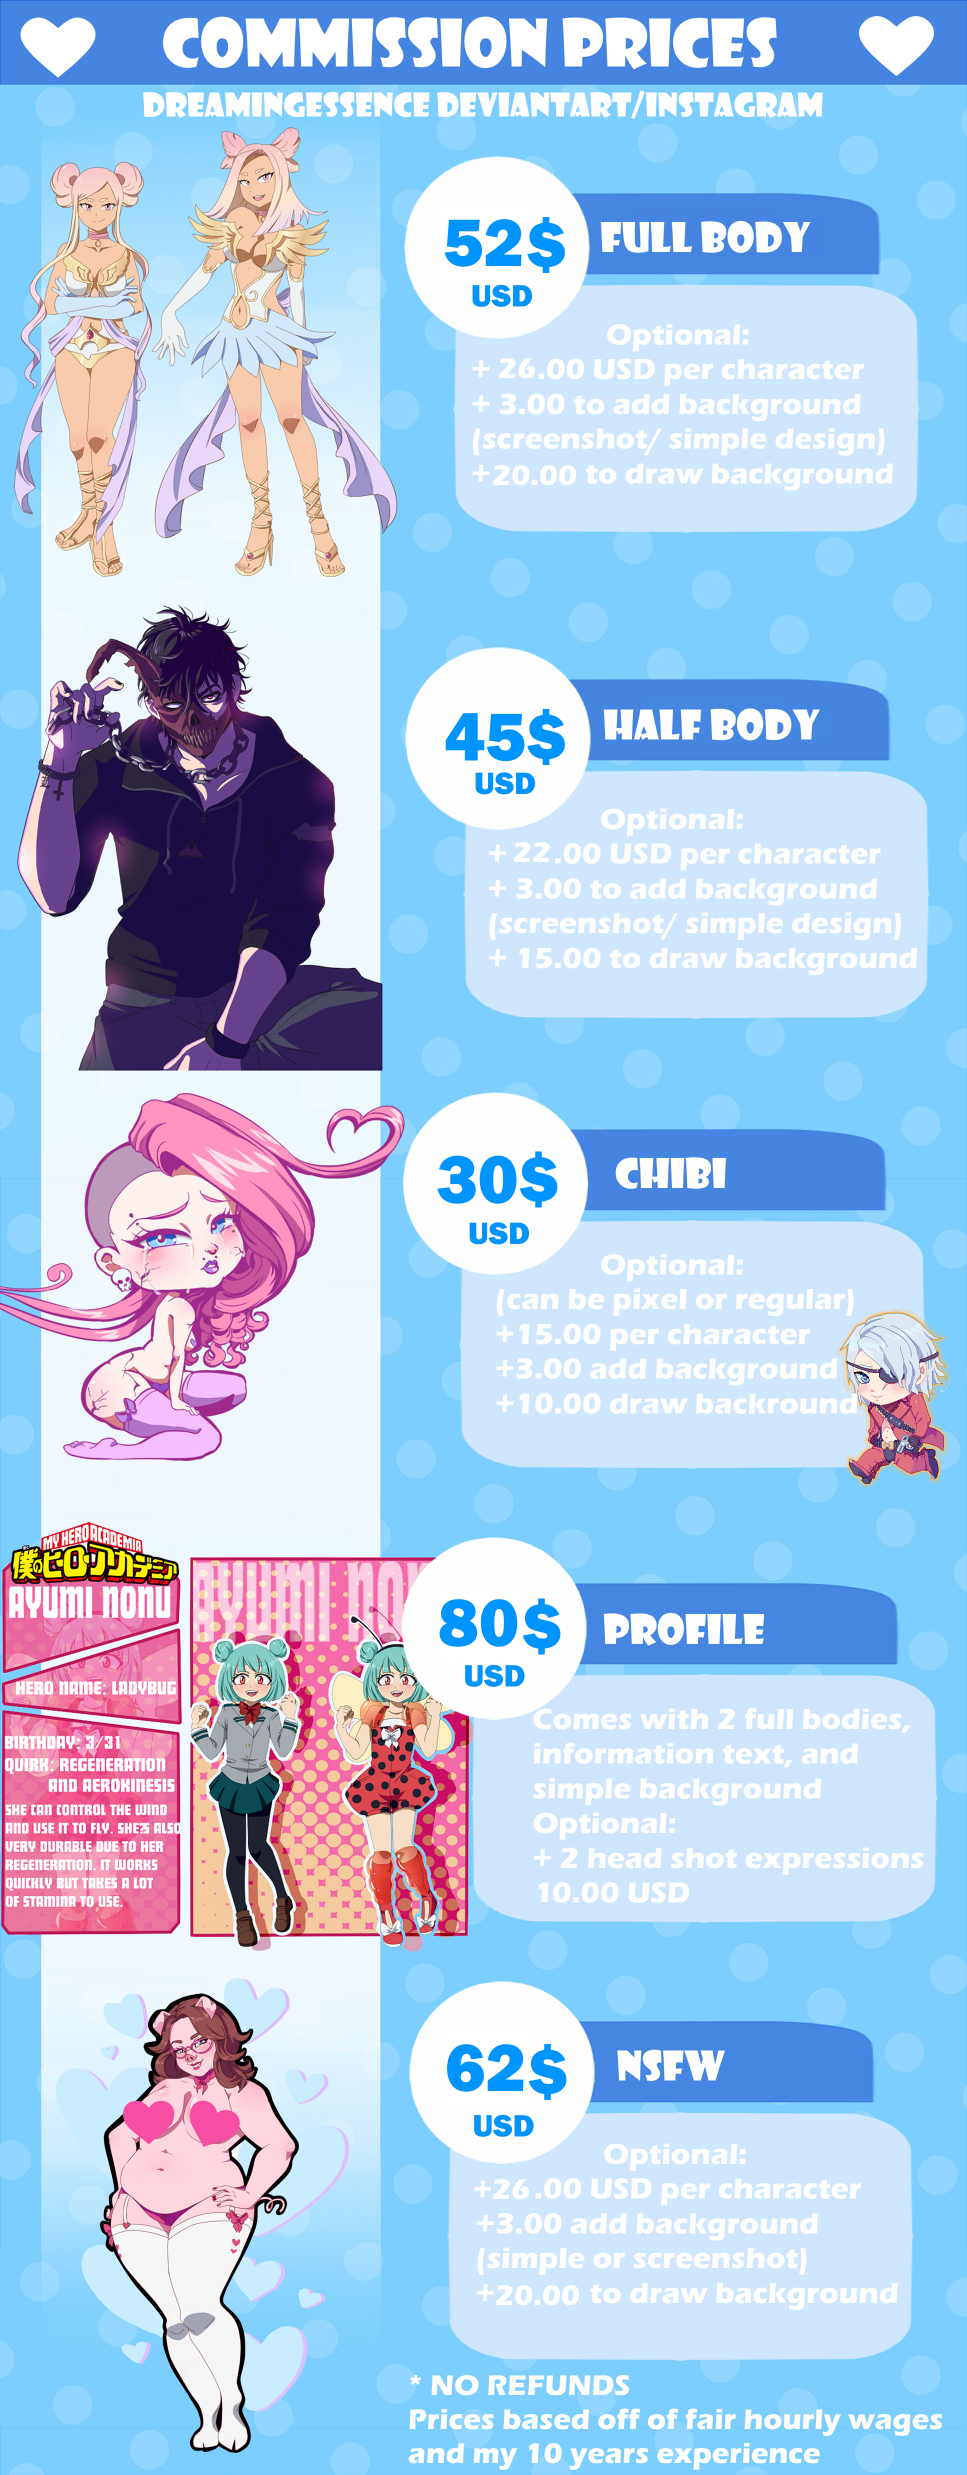 Commission Prices 2020 OPEN